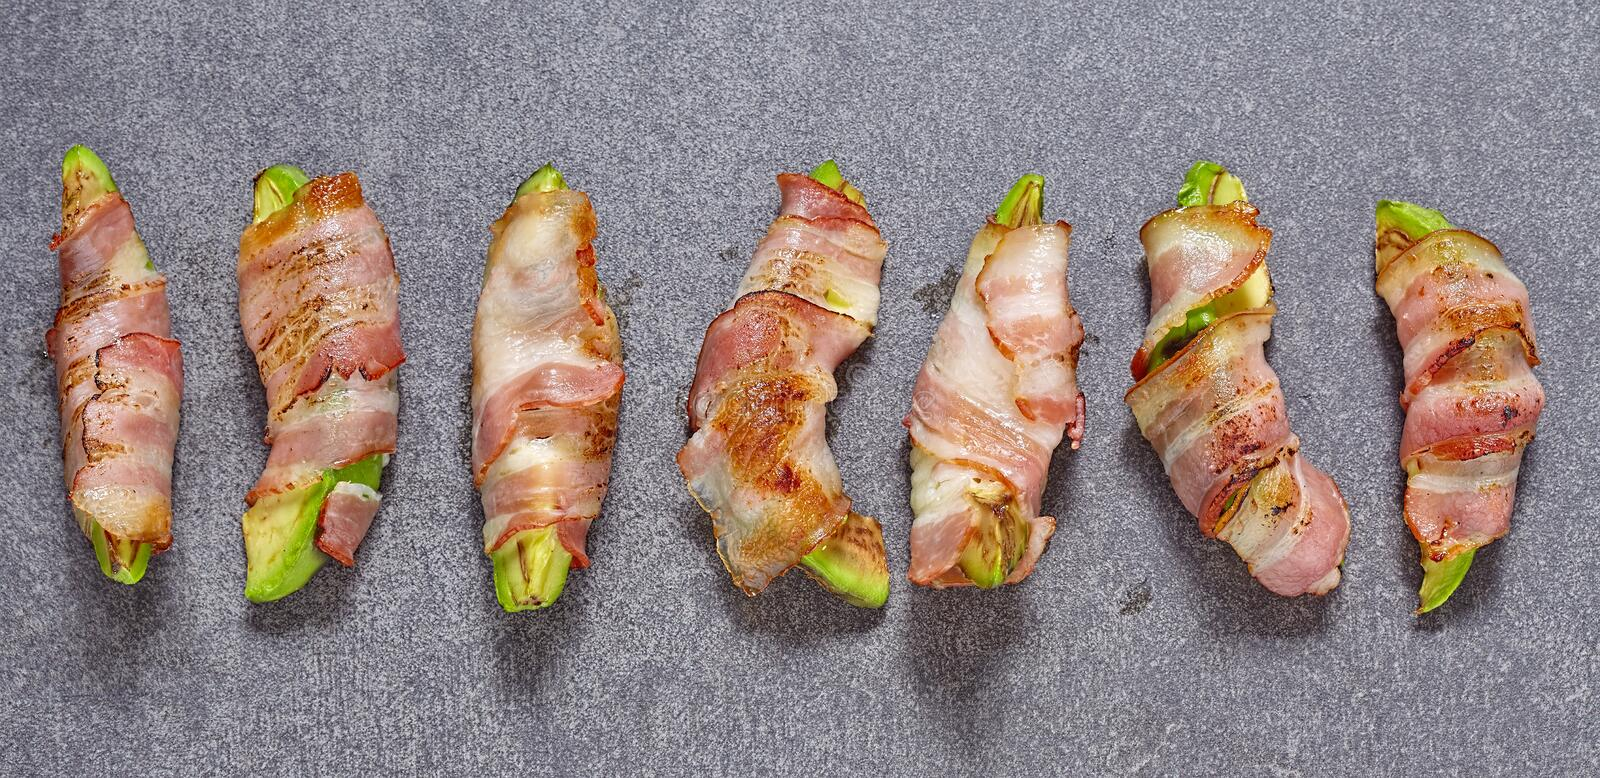 Roasted avocado pieces wrapped in bacon. Ketogenic diet royalty free stock photos